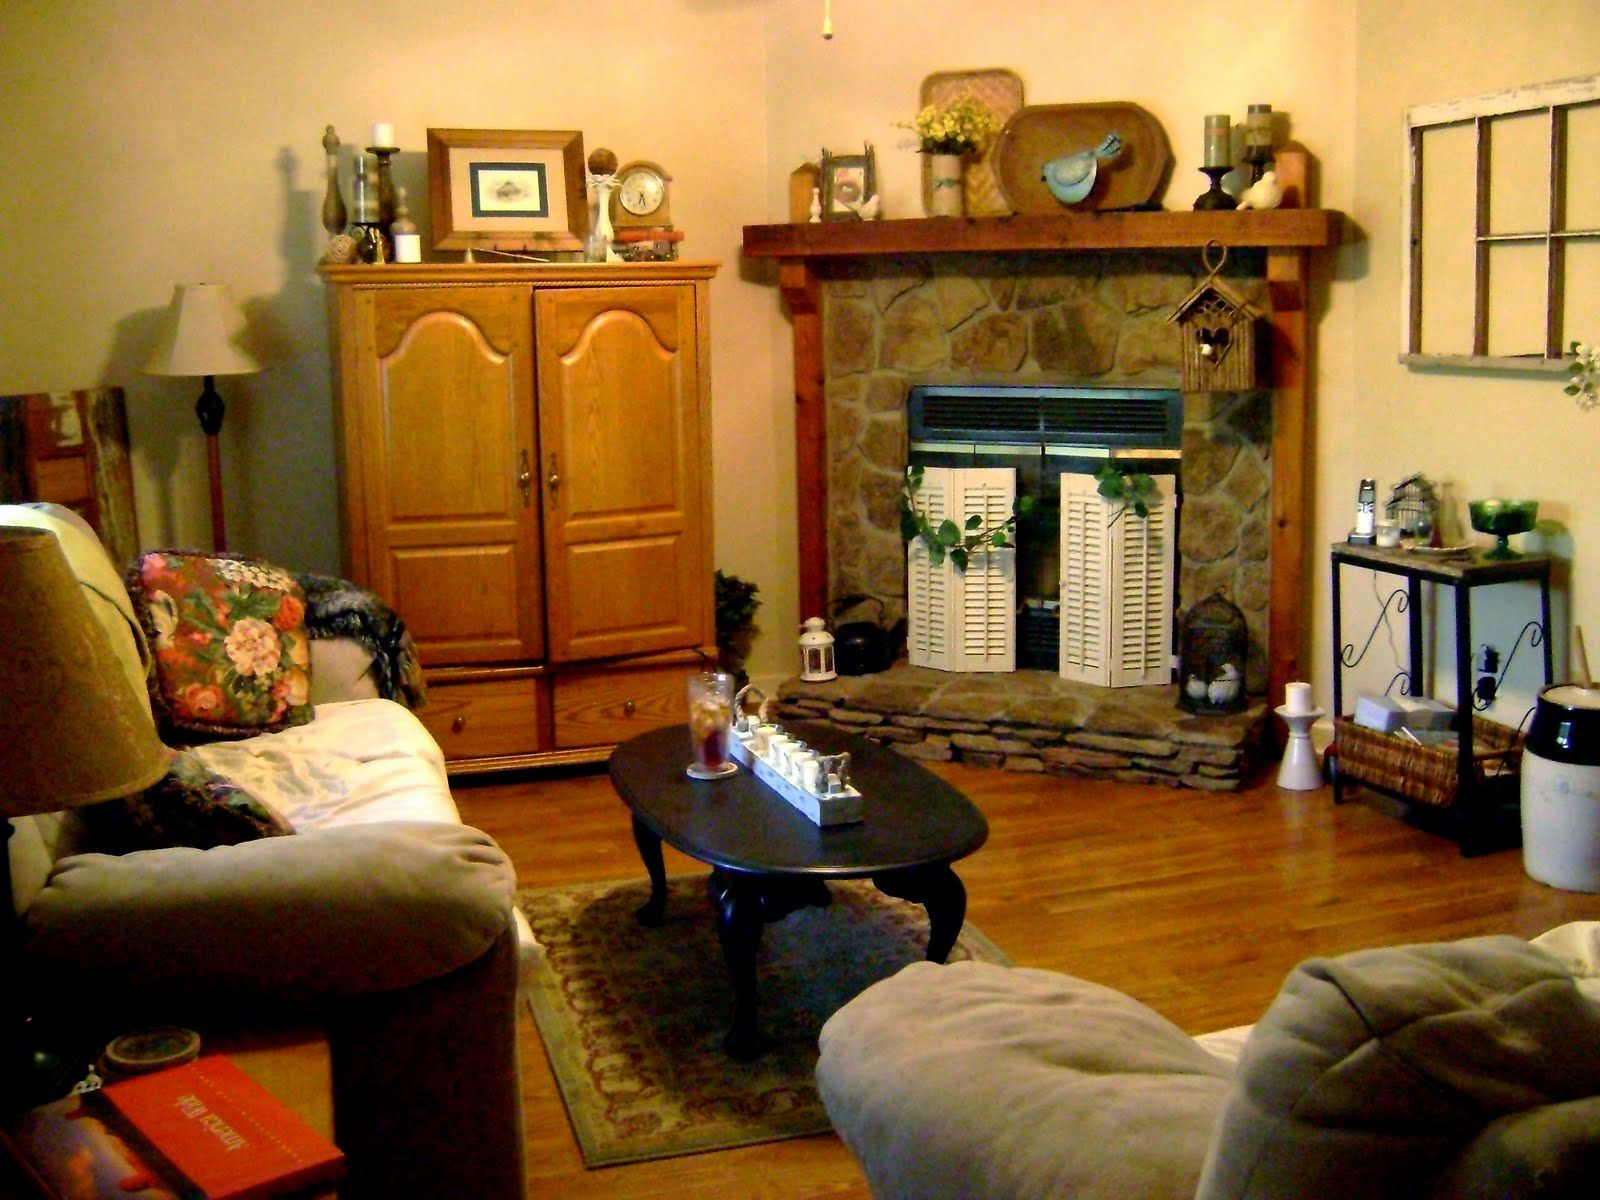 Odd Shaped Living Rooms  Google Search  For Our Room  Pinterest Impressive Odd Shaped Living Room Design Design Inspiration